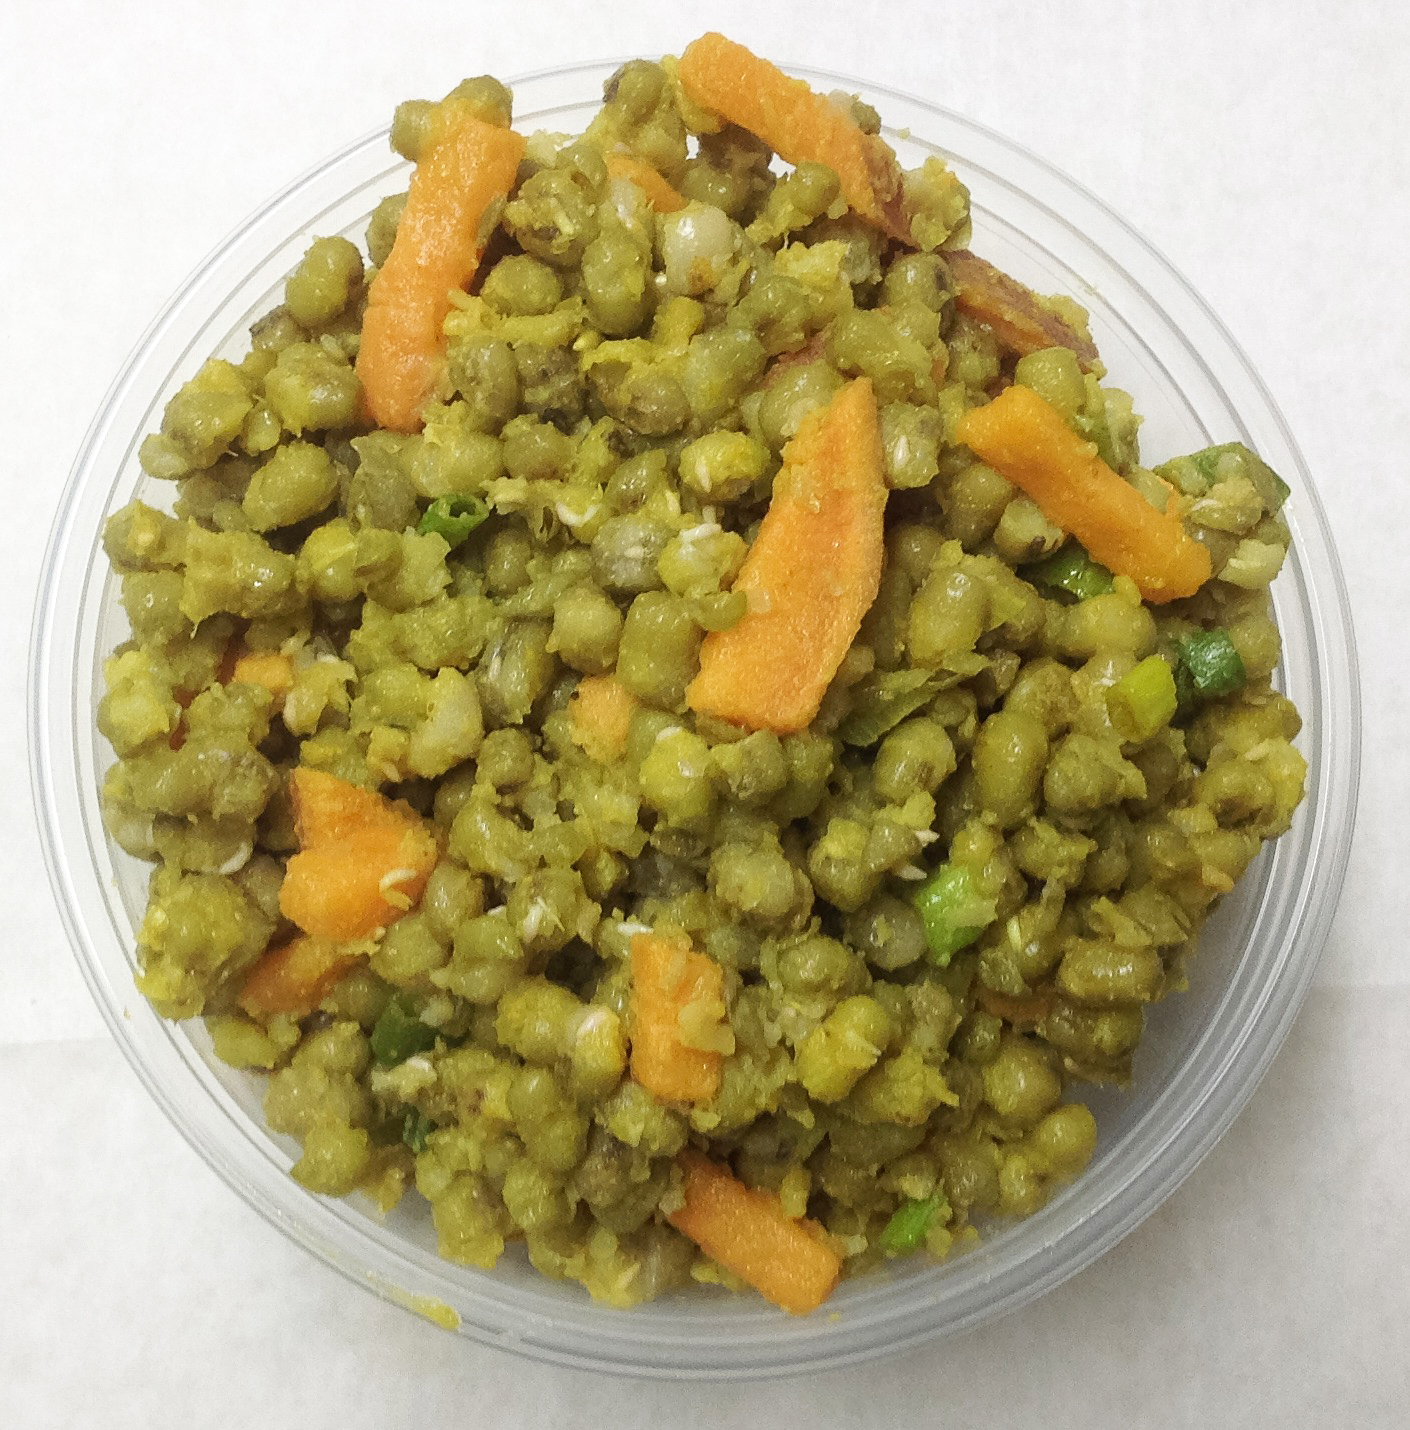 mung-beans-with-yams